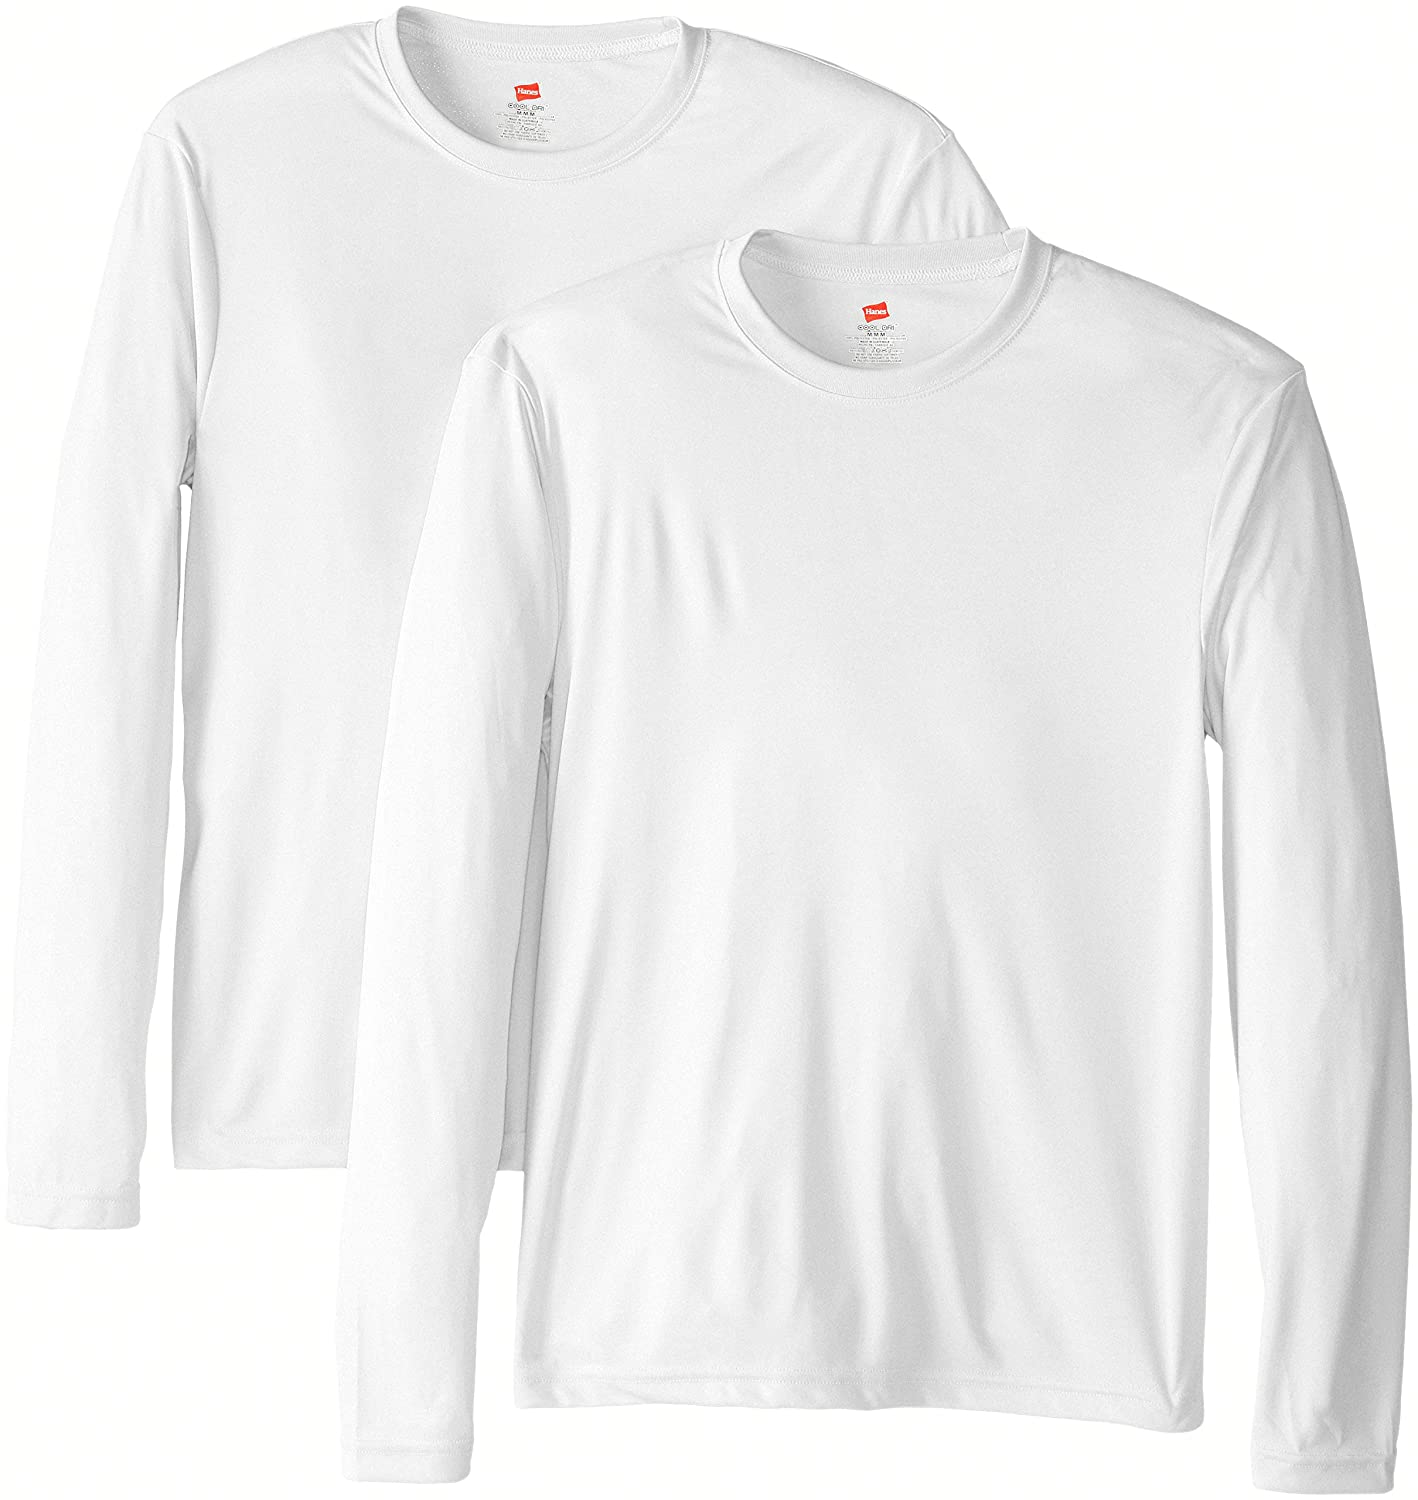 a1cabc4b7459 Hanes Men's Long Sleeve Cool Dri T-Shirt UPF 50+ (Pack of 2) at Amazon  Men's Clothing store: